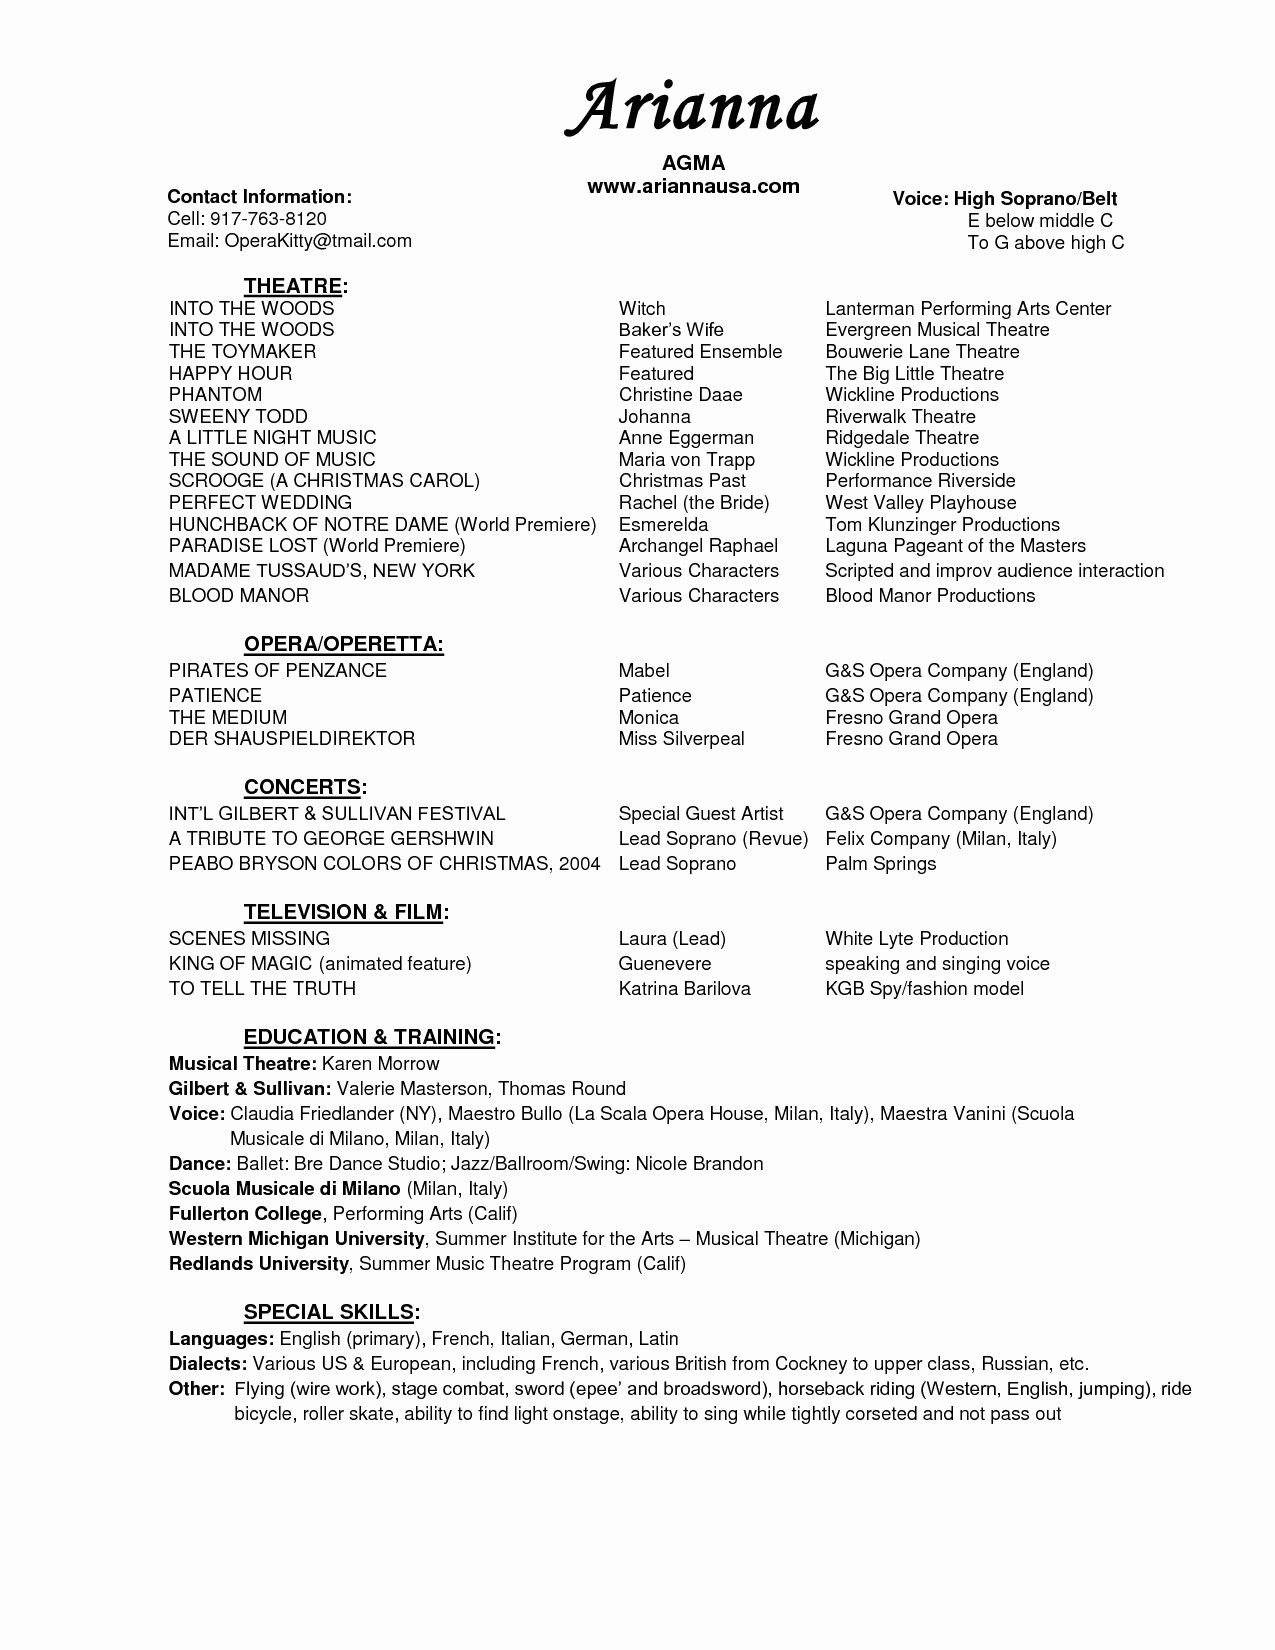 Resume the Music - Musicians Resume Template Save Musical theatre Resume Template